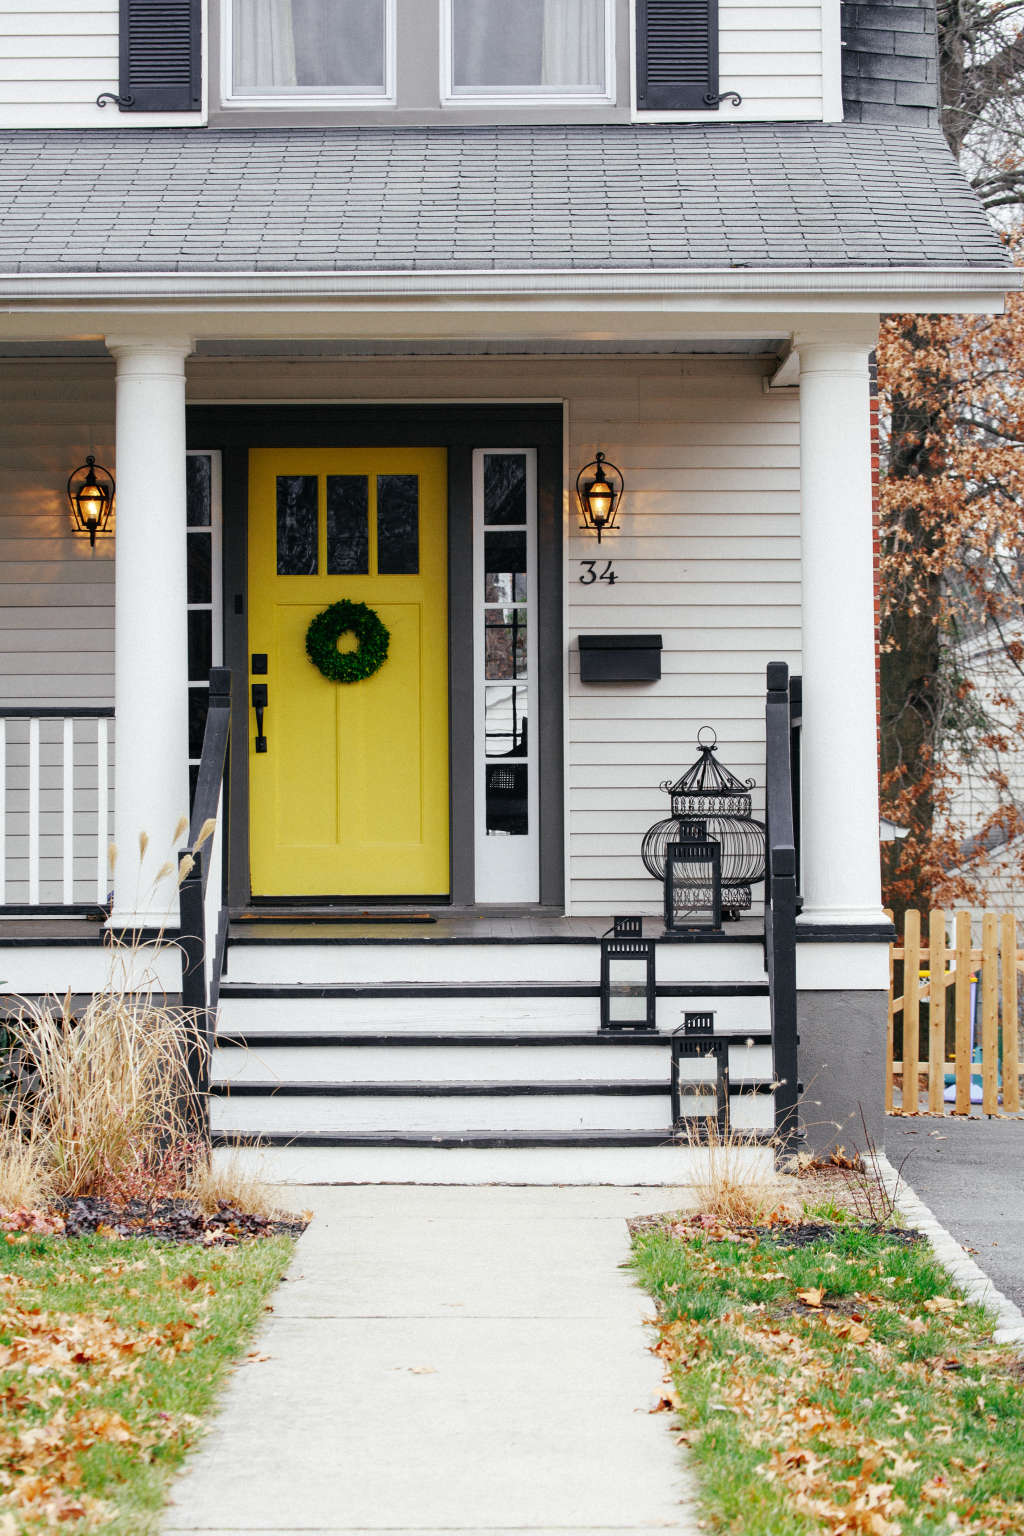 Down Payment Help: 6 Places Homebuyers Can Go